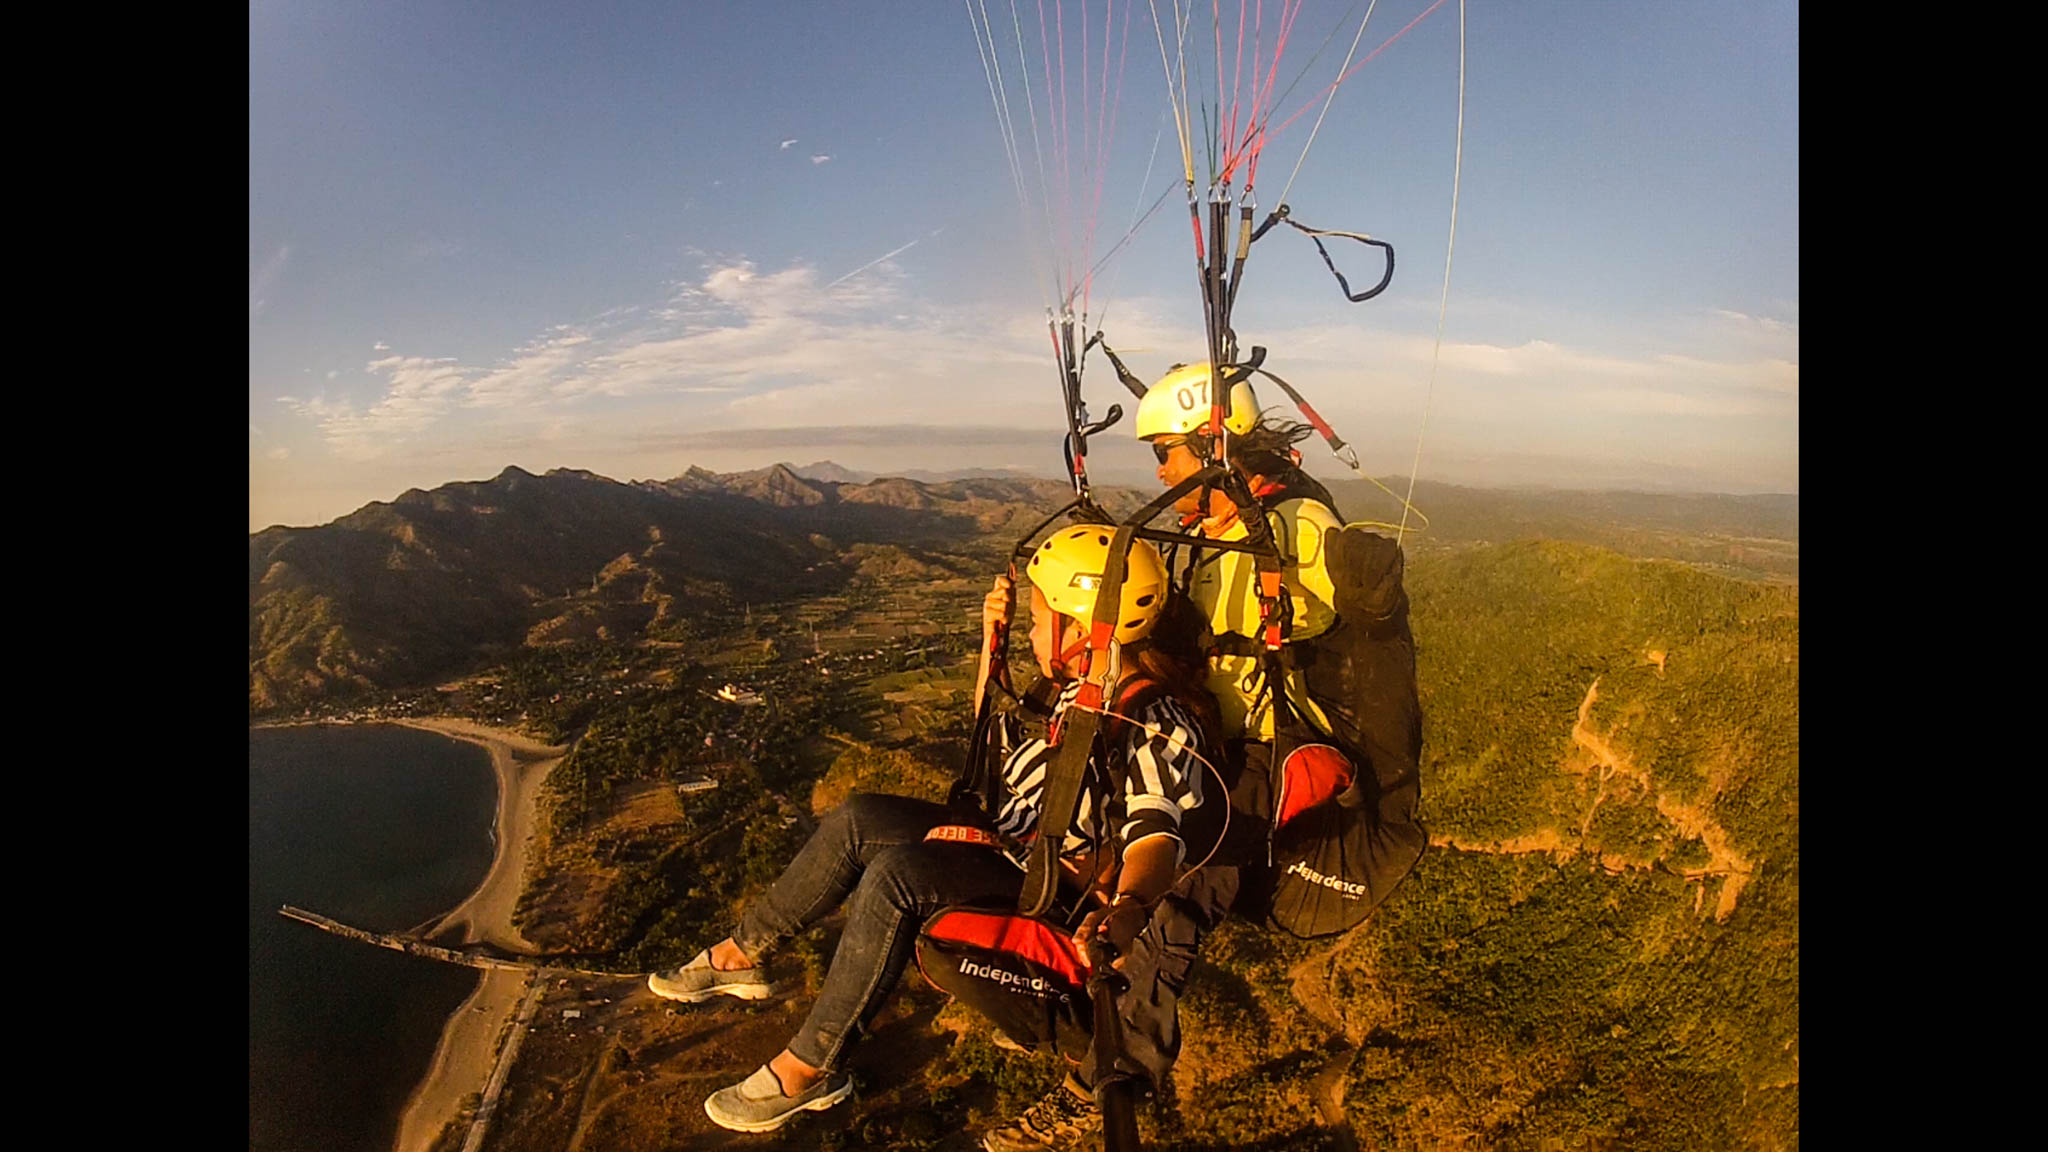 NARVACAN PARAGLIDING 6 (1 of 1)